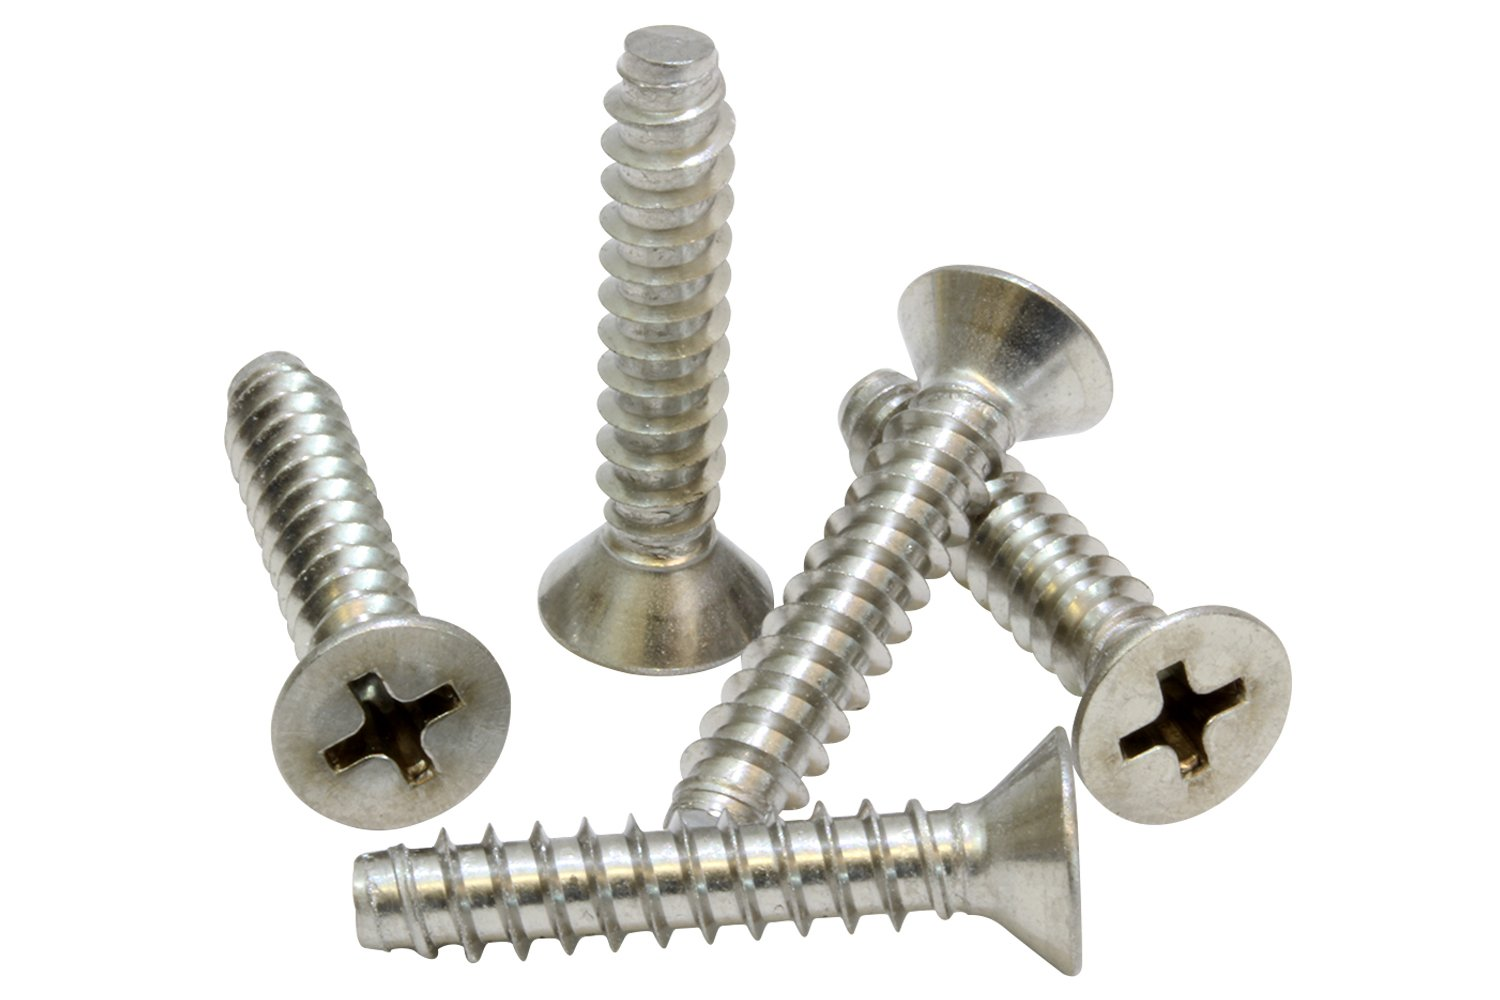 100 pc Type B Point 304 18-8 Stainless Steel Screw by Bolt Dropper #8 X 3//4 Stainless Flat Head Phillips Wood Screw,